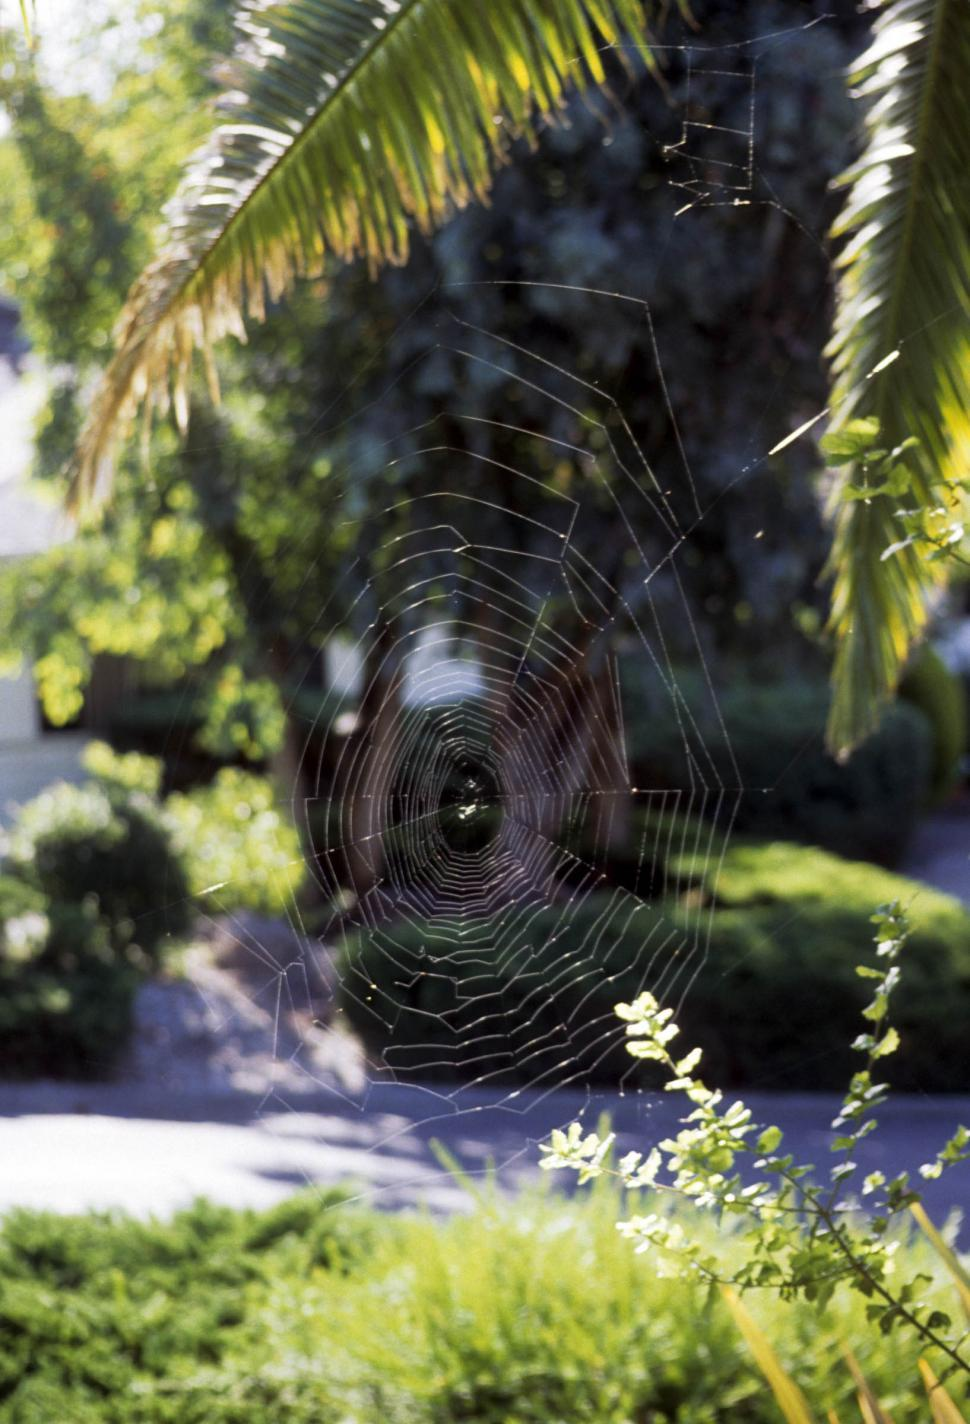 Download Free Stock Photo of Orb-weaver spider - Web